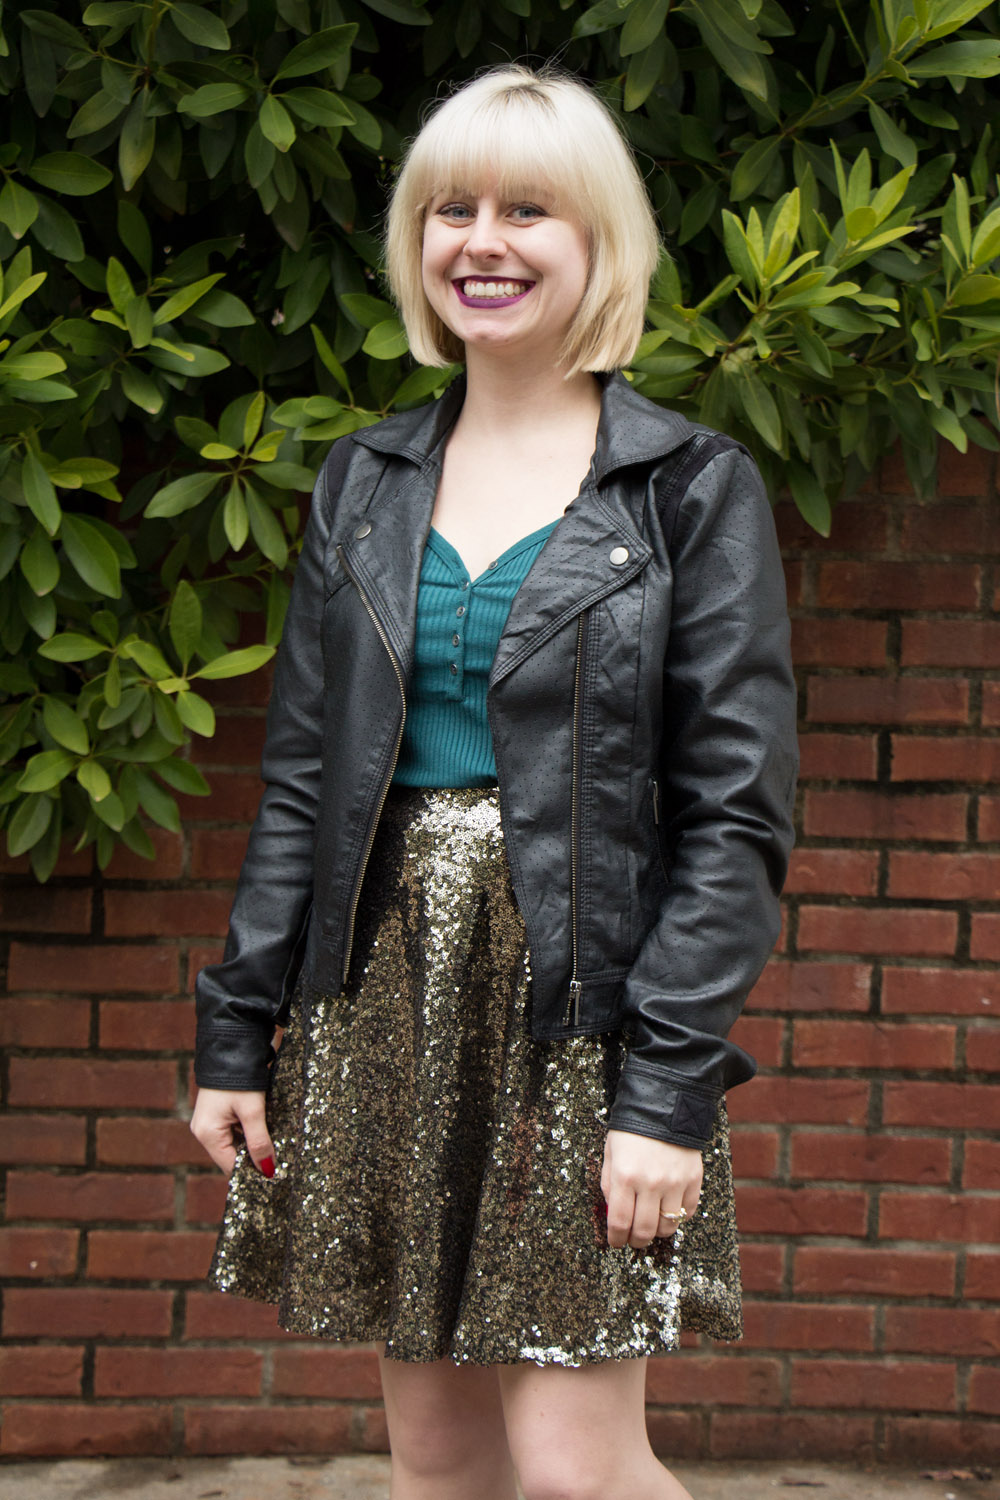 Blonde Hair with Bangs Faux Leather Jacket Sparkly Skater Skirt